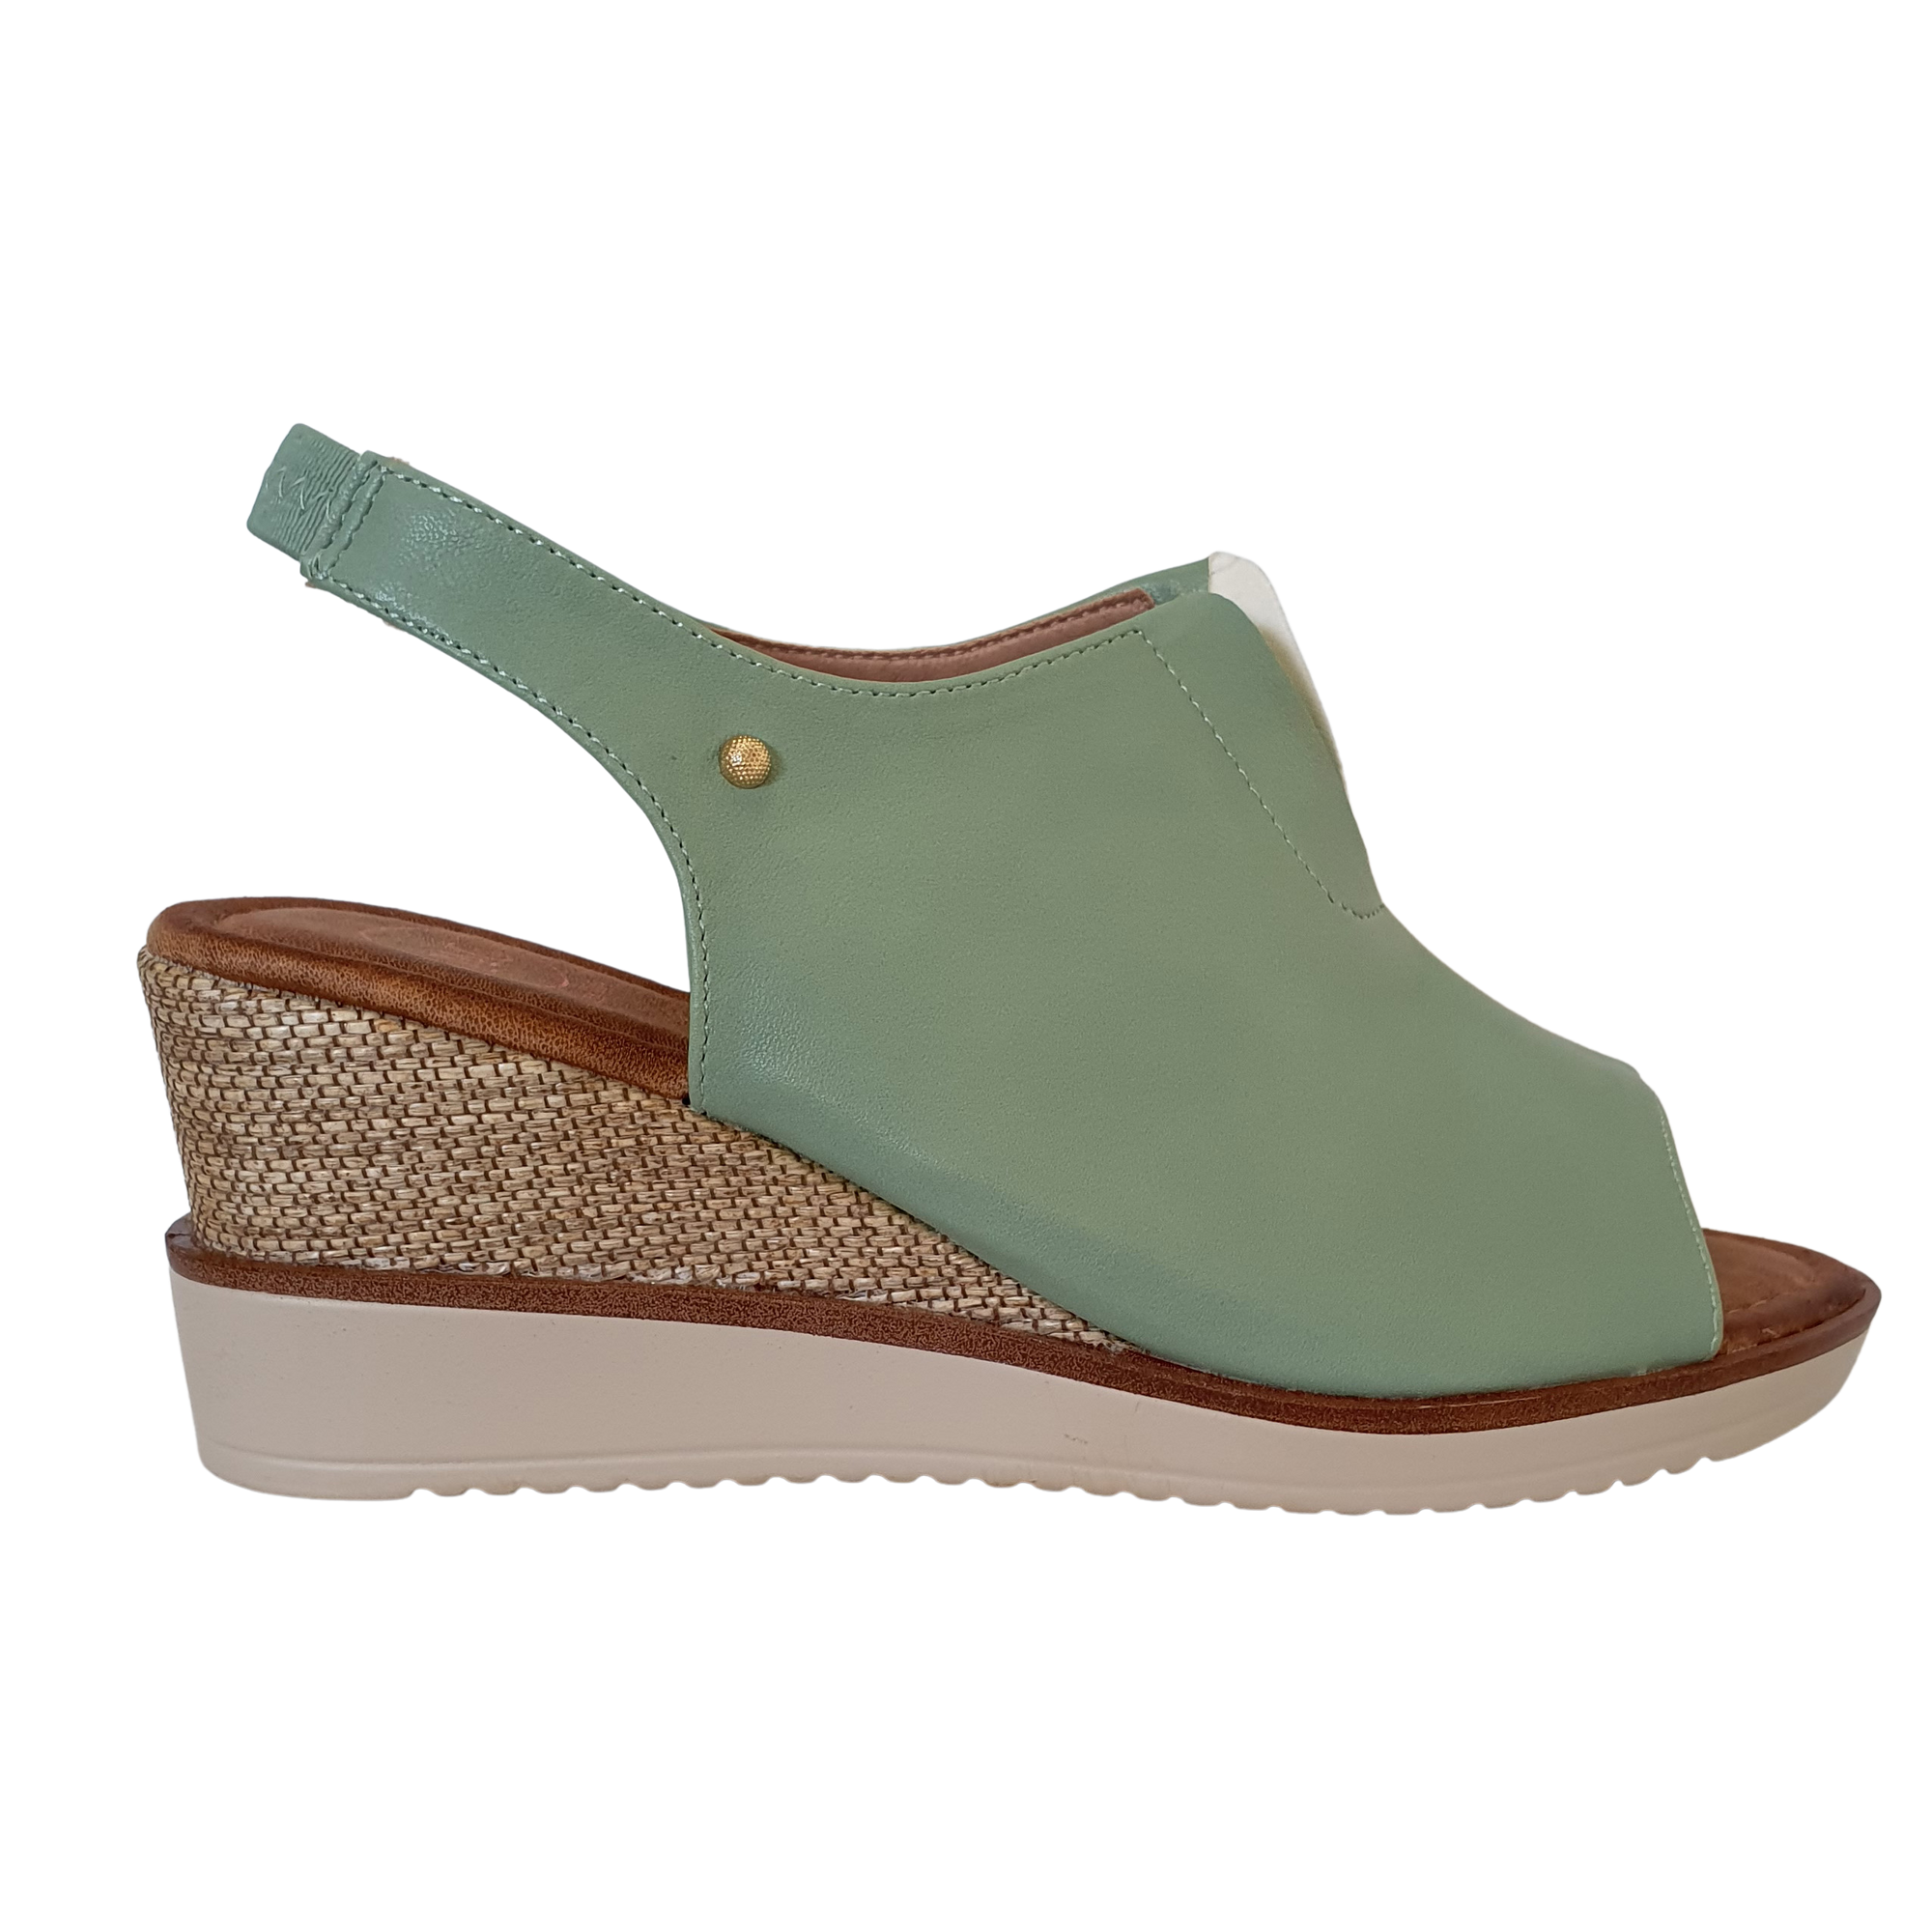 Zanni Ladies Wedge Sandal - Rahina - Green